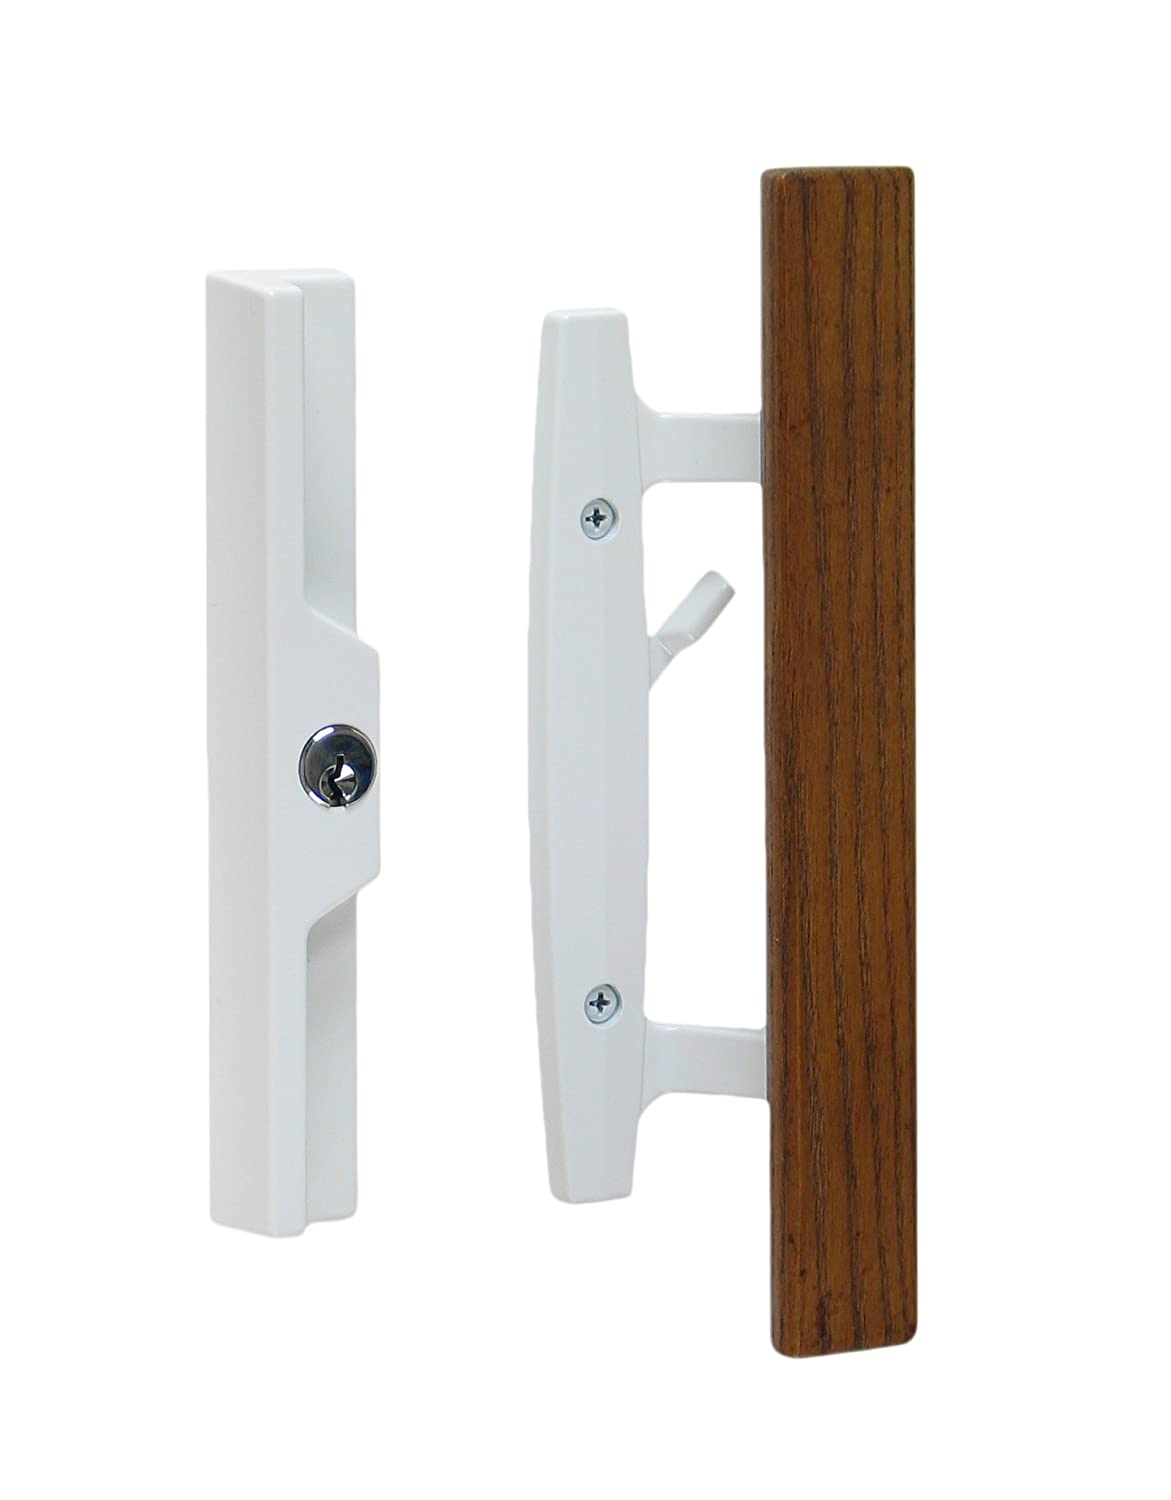 "Lanai Sliding Glass Door Handle Set with Oak Wood Pull in White Finish, Includes Key Cylinder, Standard 3-15/16"" CTC Screw Holes, 1-1/2"" Door Thickness"